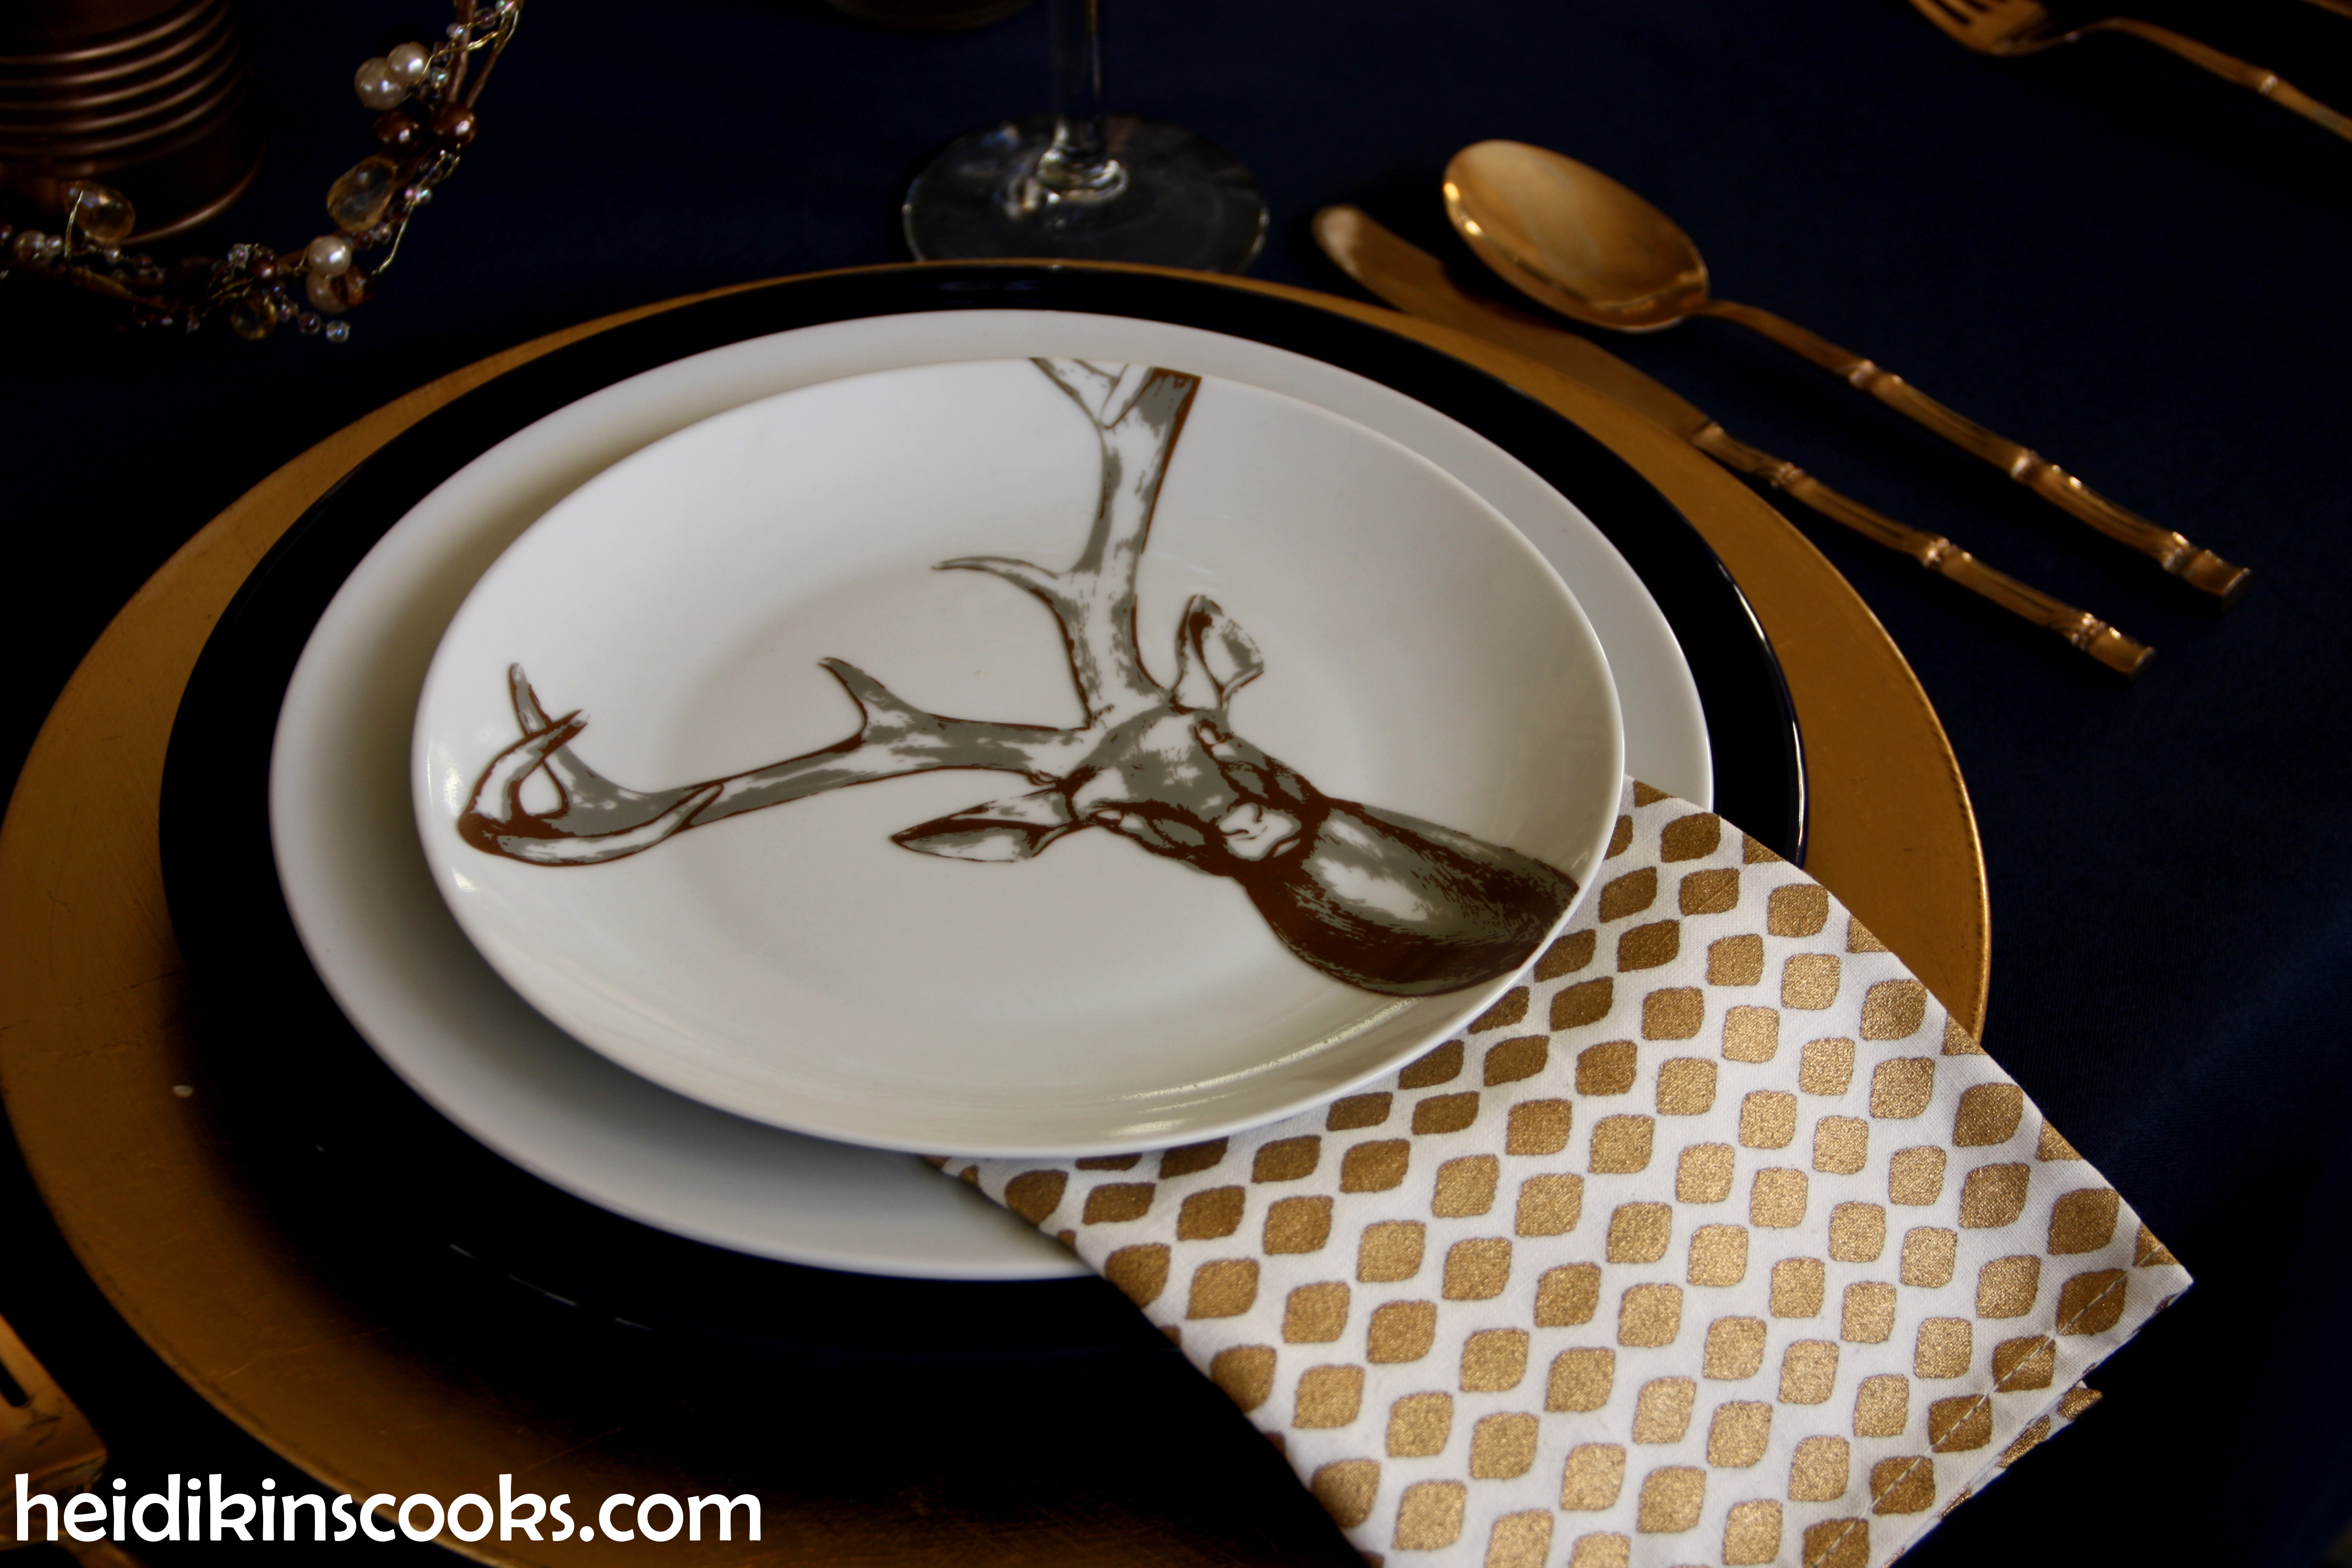 Tablescape Navy Gold_Antler Plates3_heidikinscooks_Jan 2104 & Table setting with gold and navy. And antlers. | heidikins cooks